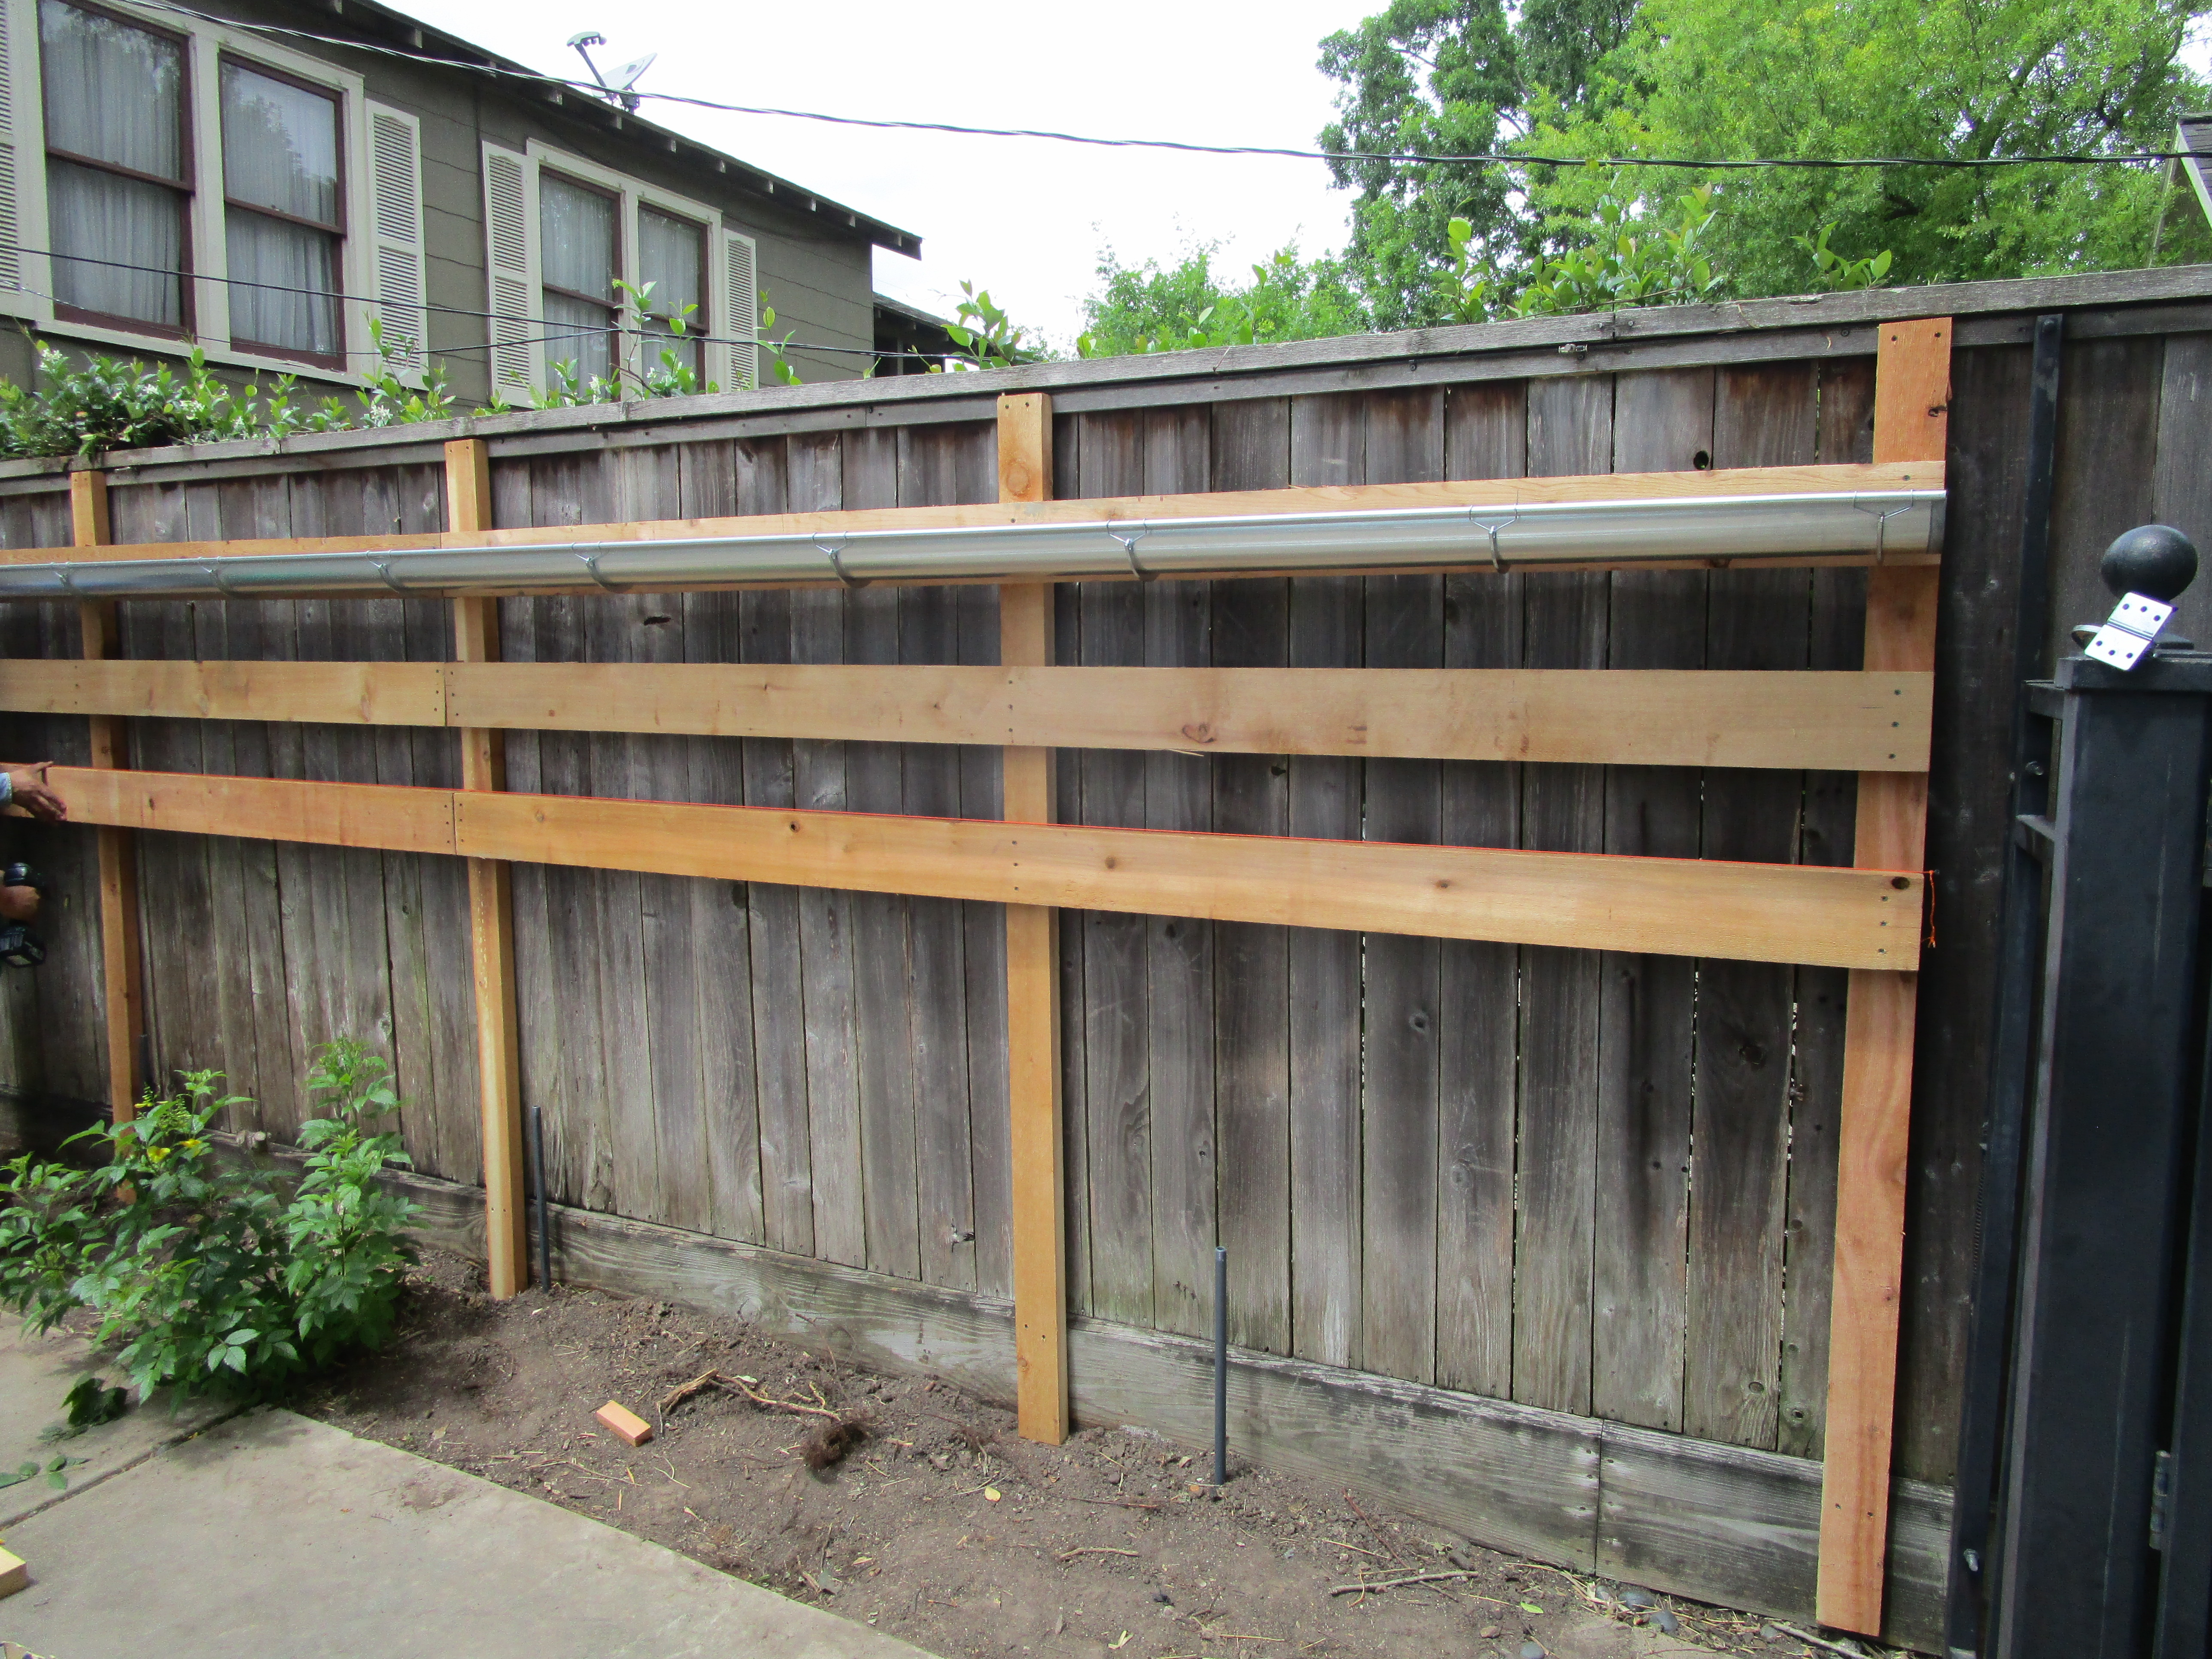 How To Build A Vertical Garden With Rain Gutters